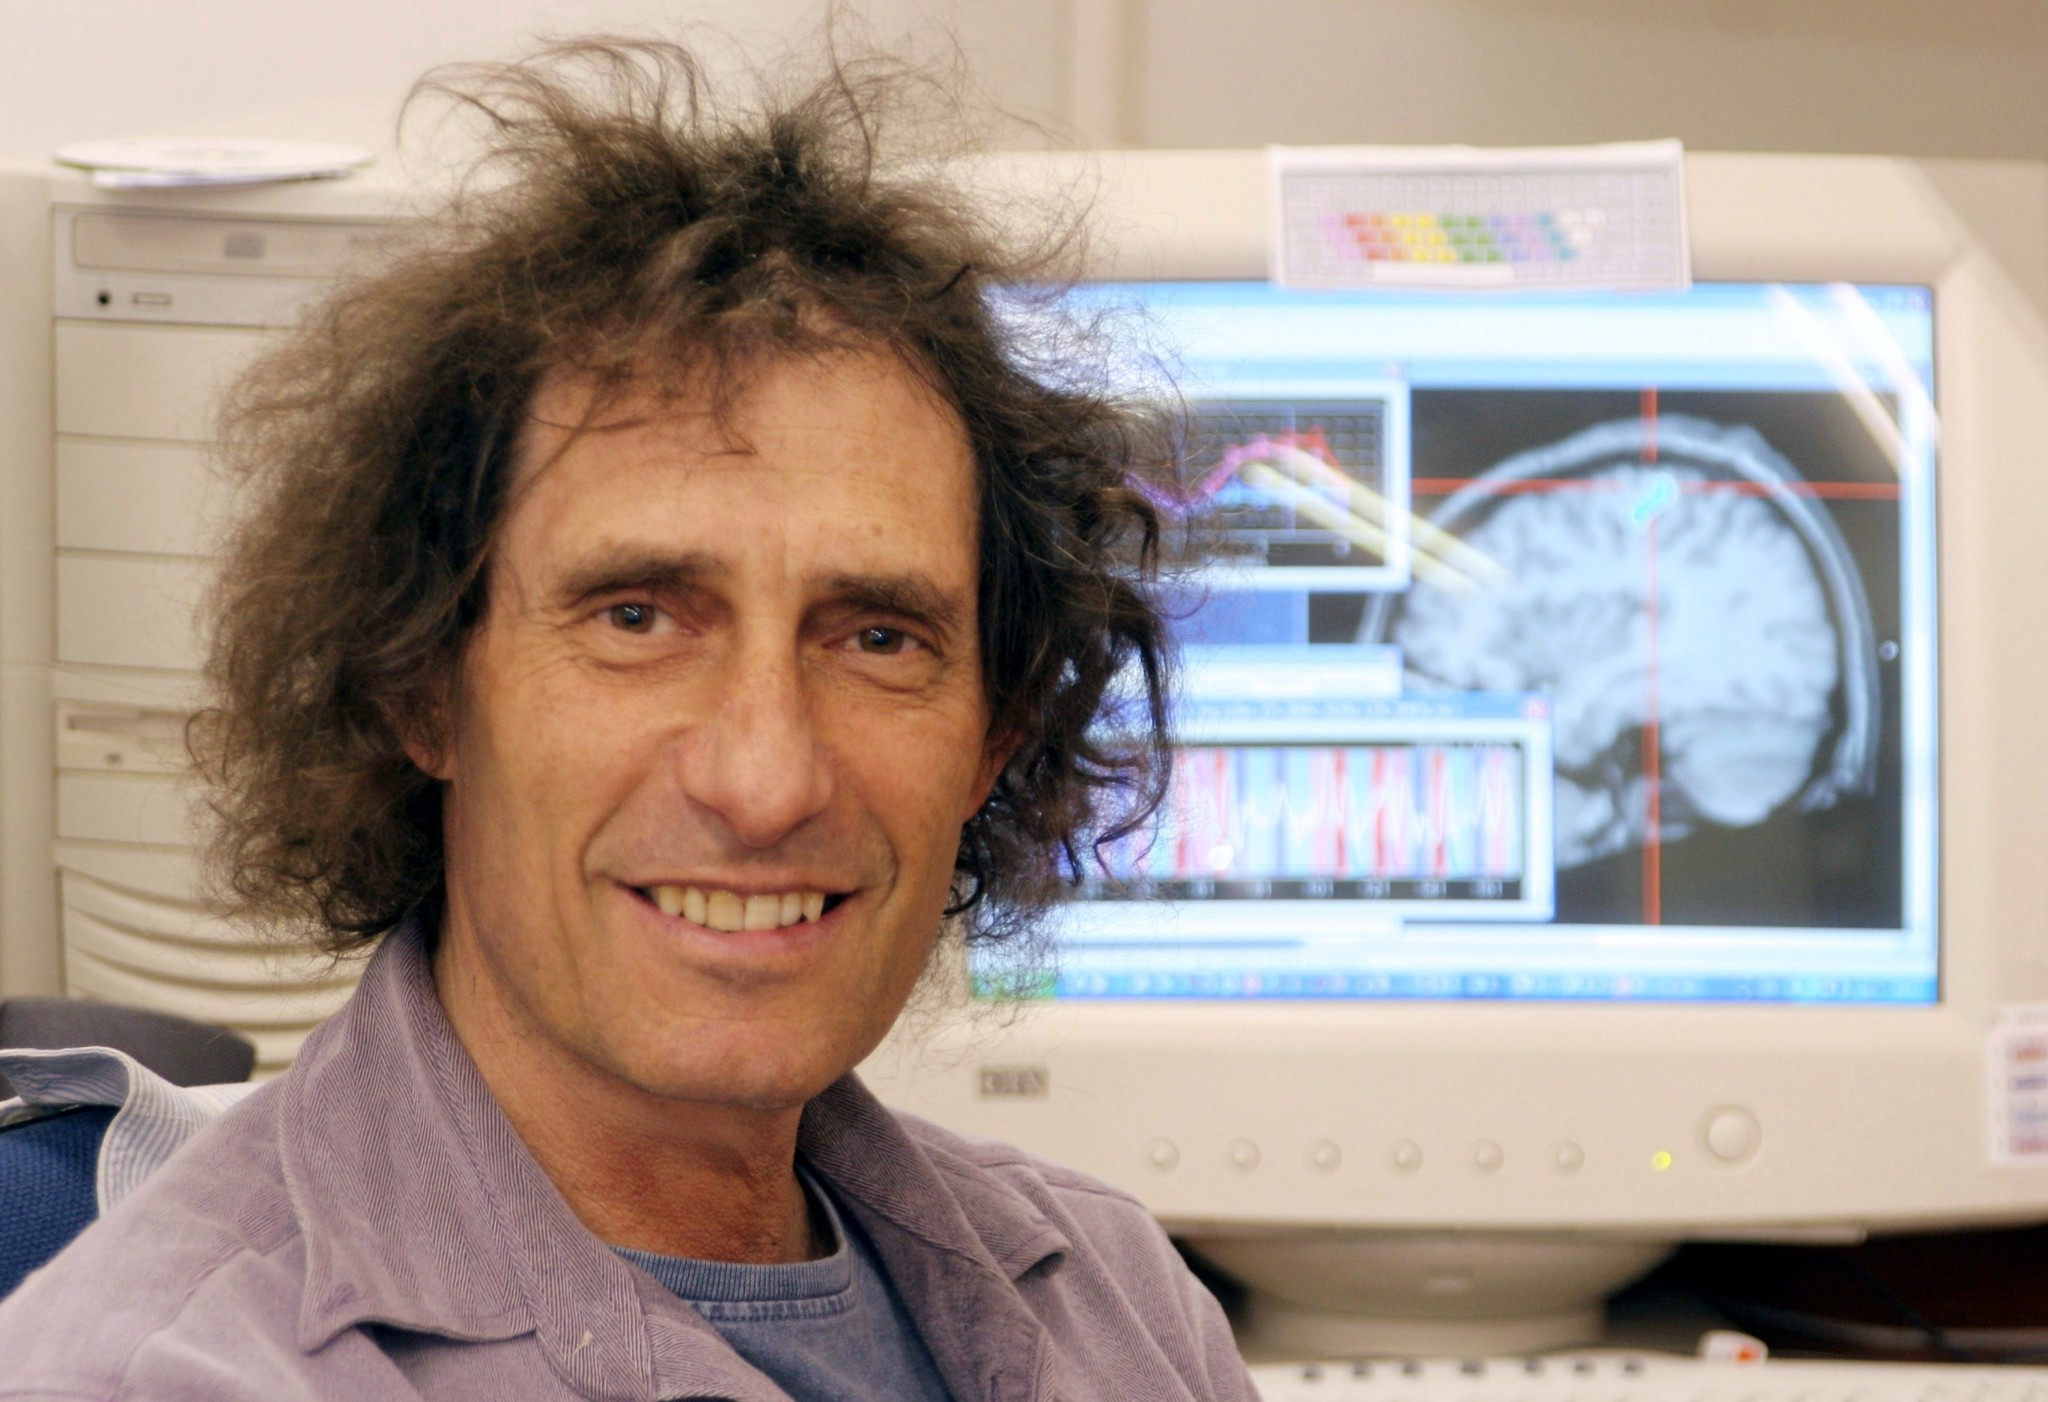 Prof. Idan Segev of the Hebrew University's Edmond and Lily Safra Center for Brain Sciences and director of neurobiology, is a senior author of the research paper and contributor to the Blue Brain Project. Photo by Sasson Tiram